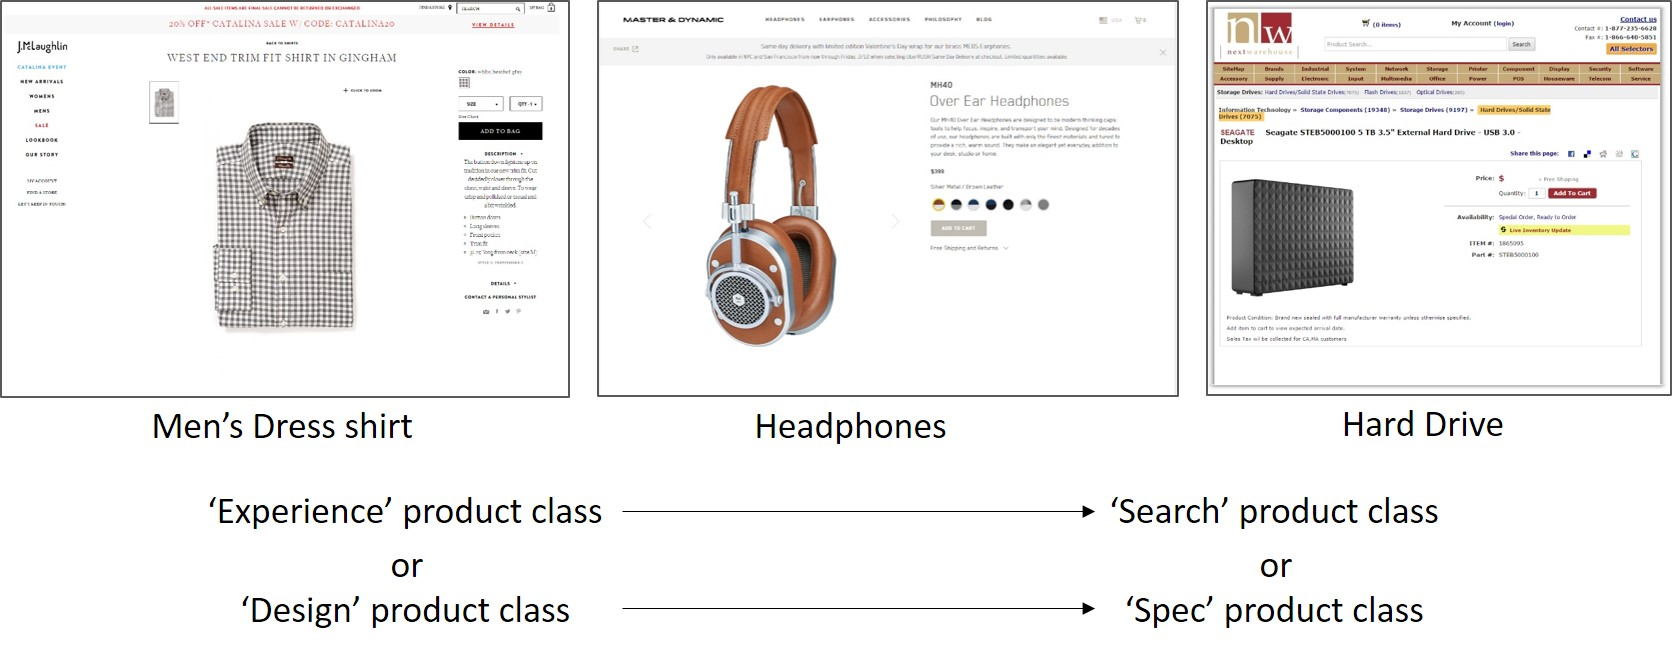 Product class examples ranging from shirt to headphones to hard drive